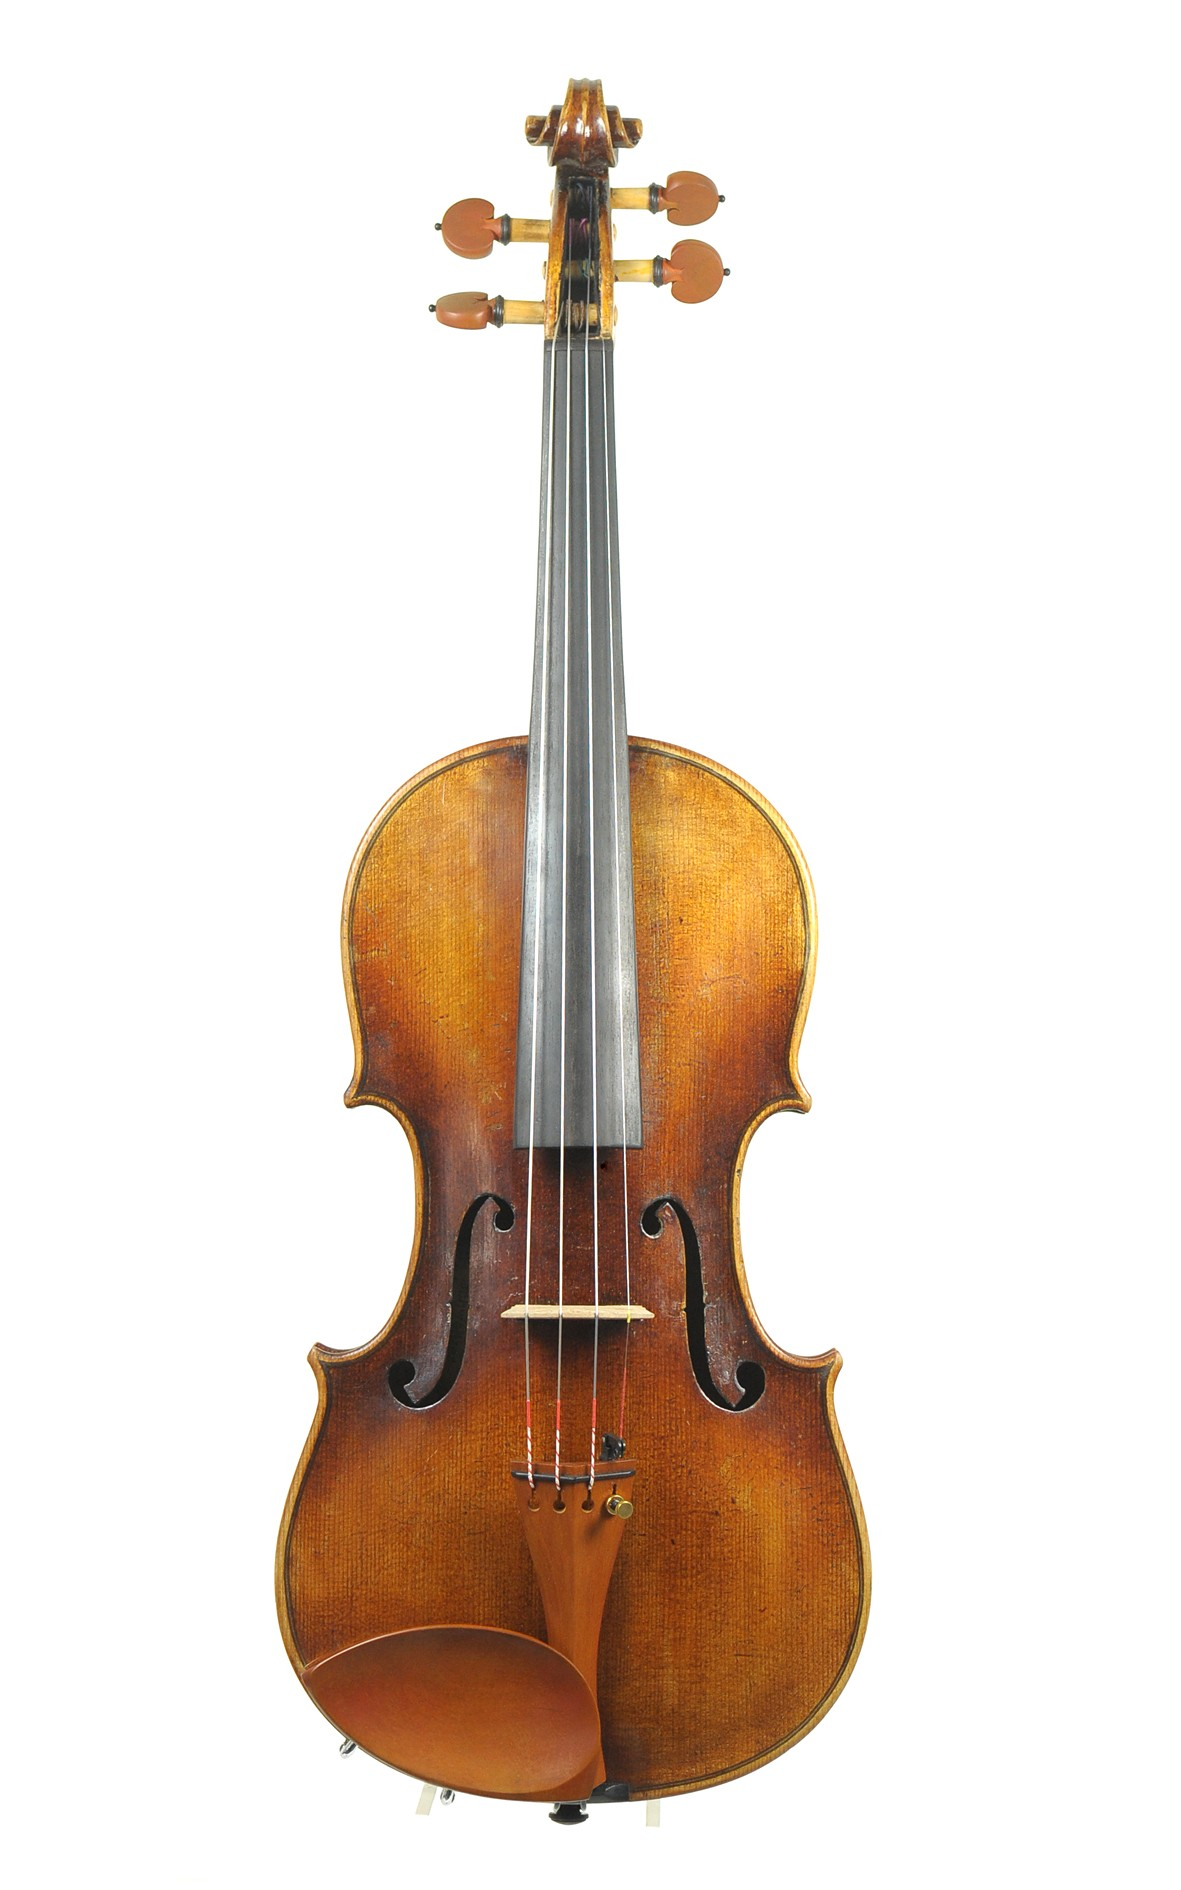 Old Saxonian violin after J.B. Schweitzer - top